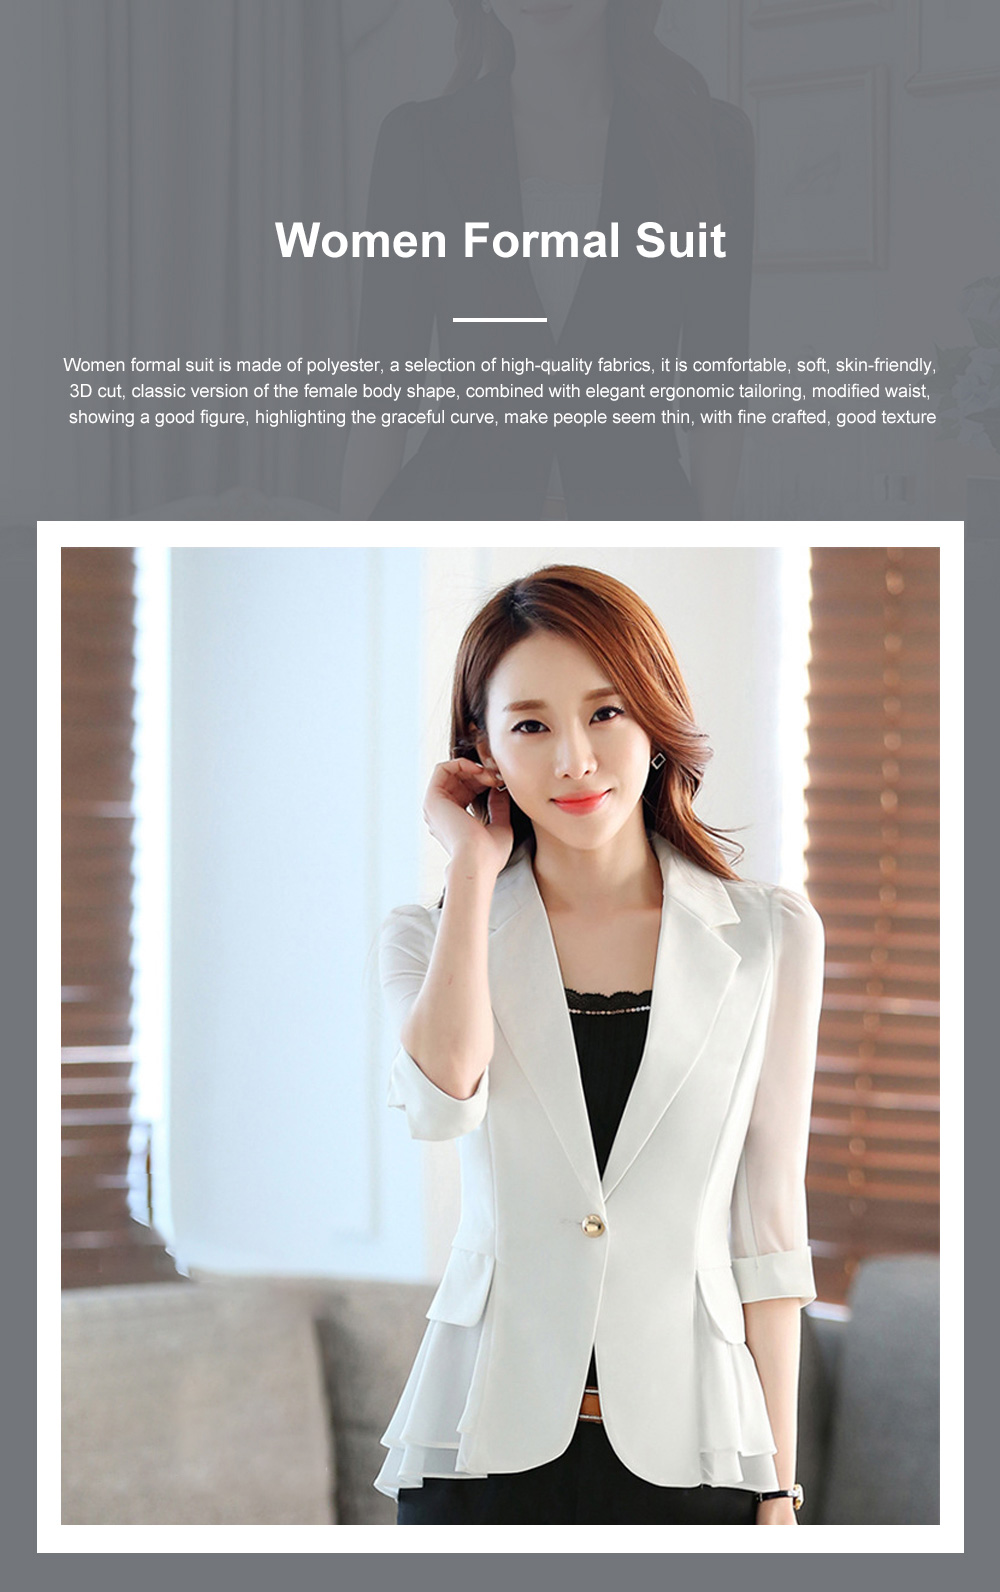 2019 Women New Design Fashion Formal Suit for Office Lady Work Wear Suit Seven-point Sleeves Ruffled Chiffon Women's Jacket Short Paragraph Slim 0